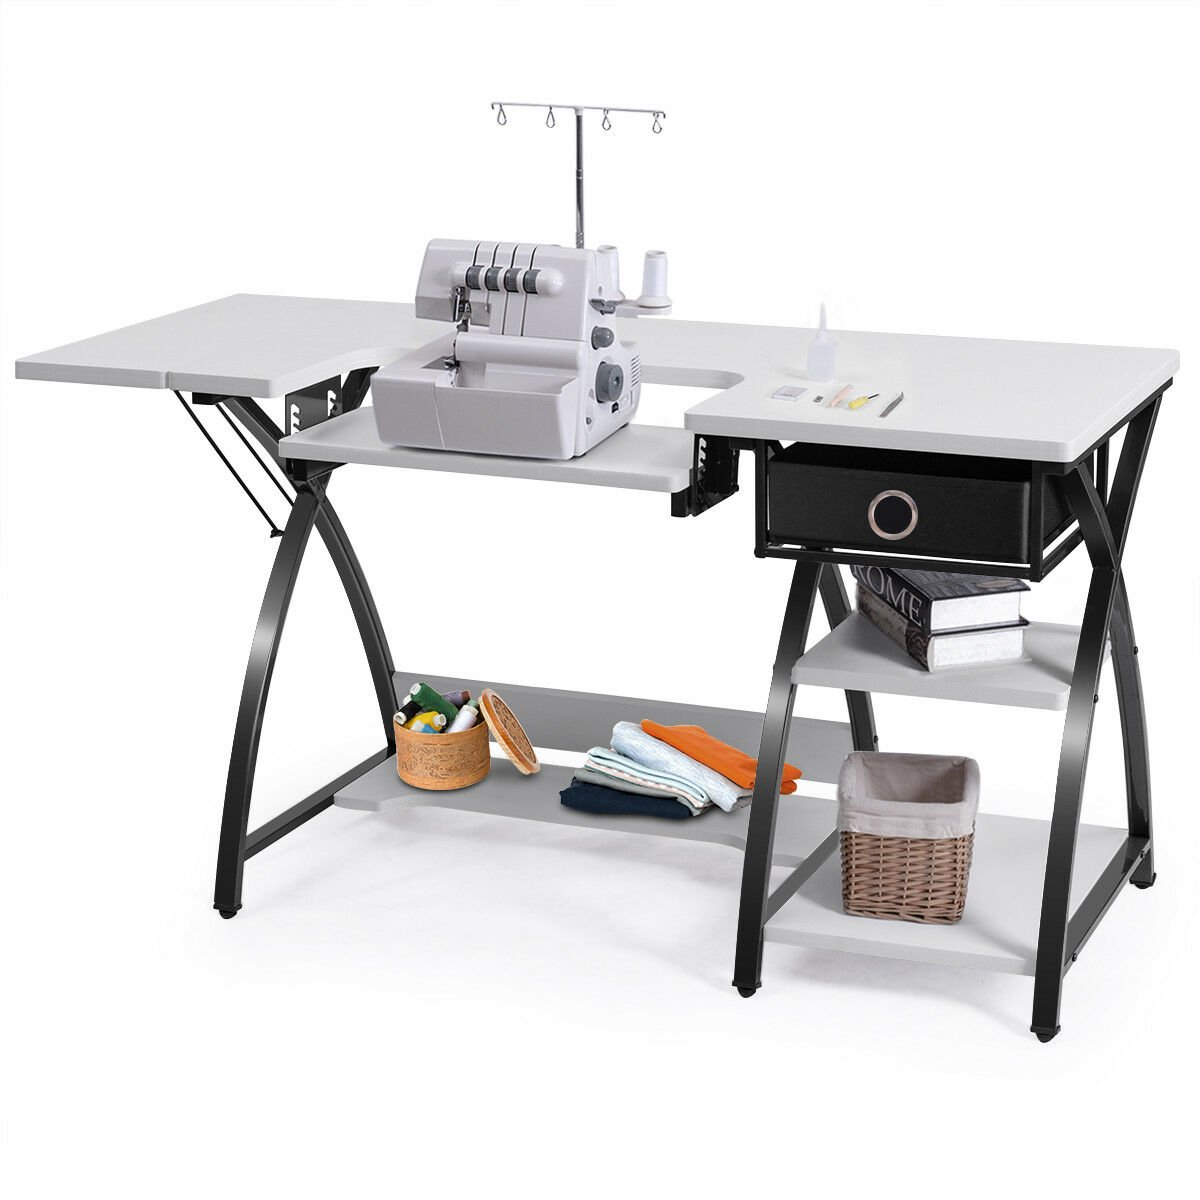 Sewing Craft Table Folding Computer Desk Adjustable Platform W Drawer Shleves Walmart Canada